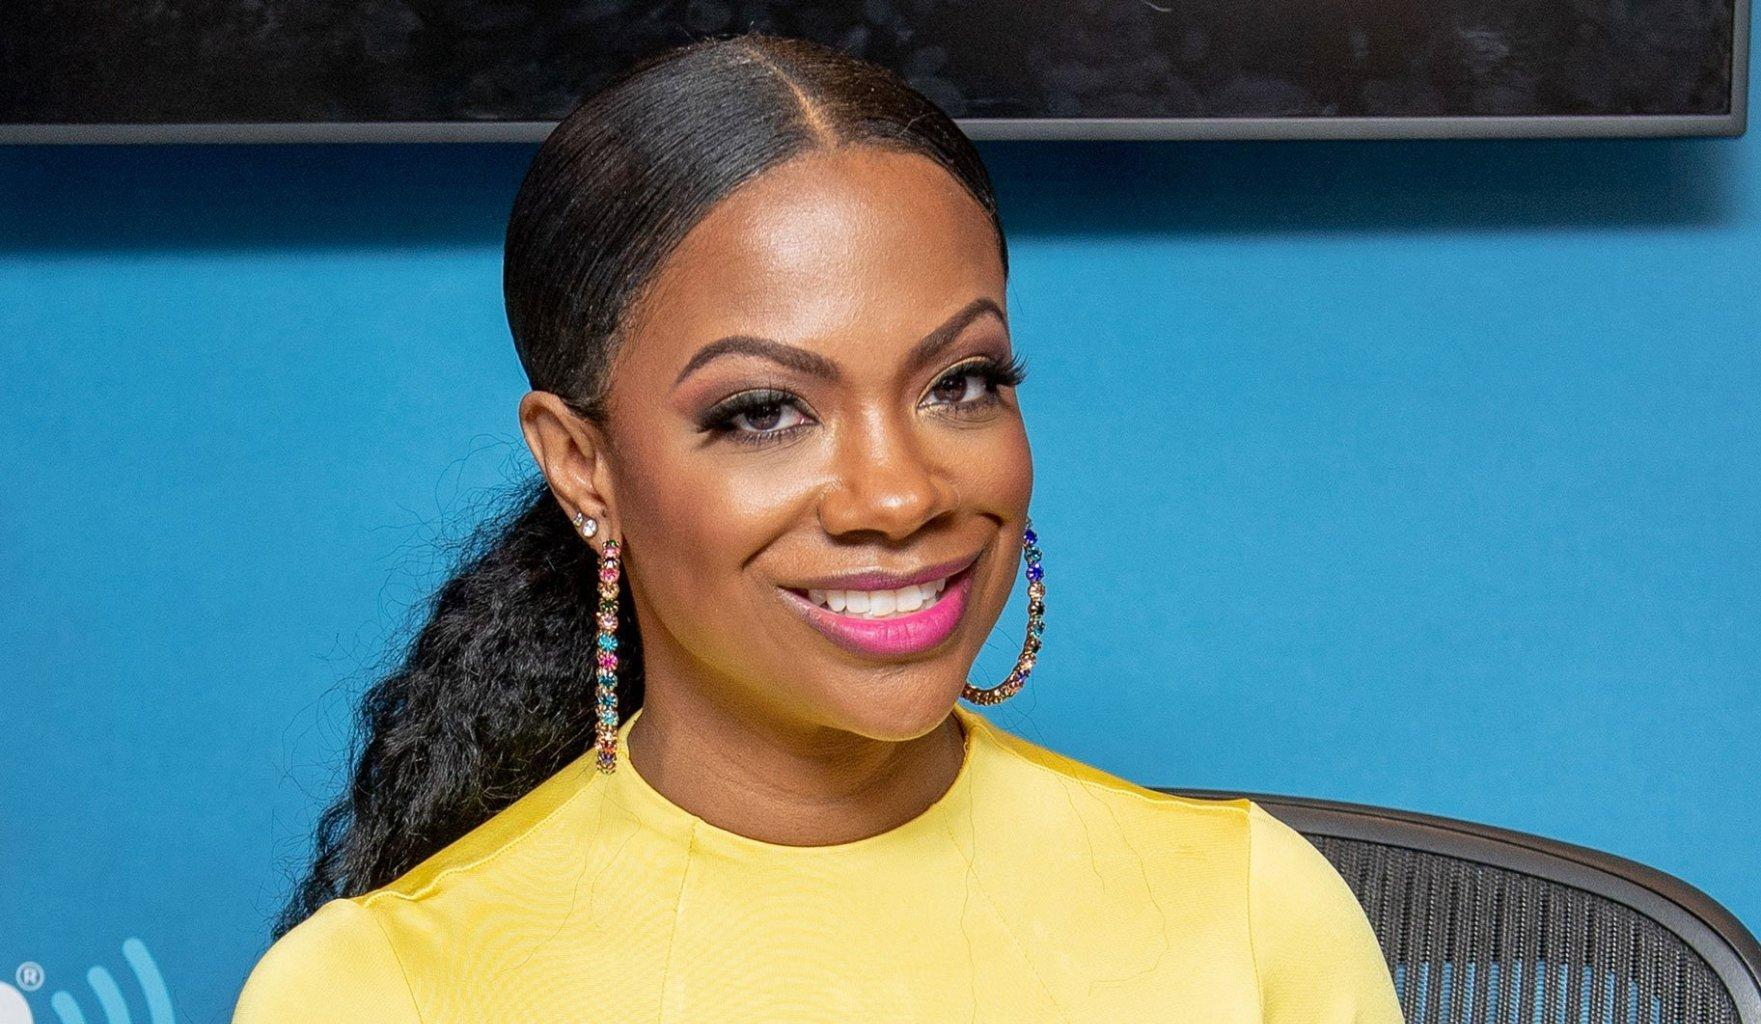 Kandi Burruss Asks For Fans' Help In A Funny Matter